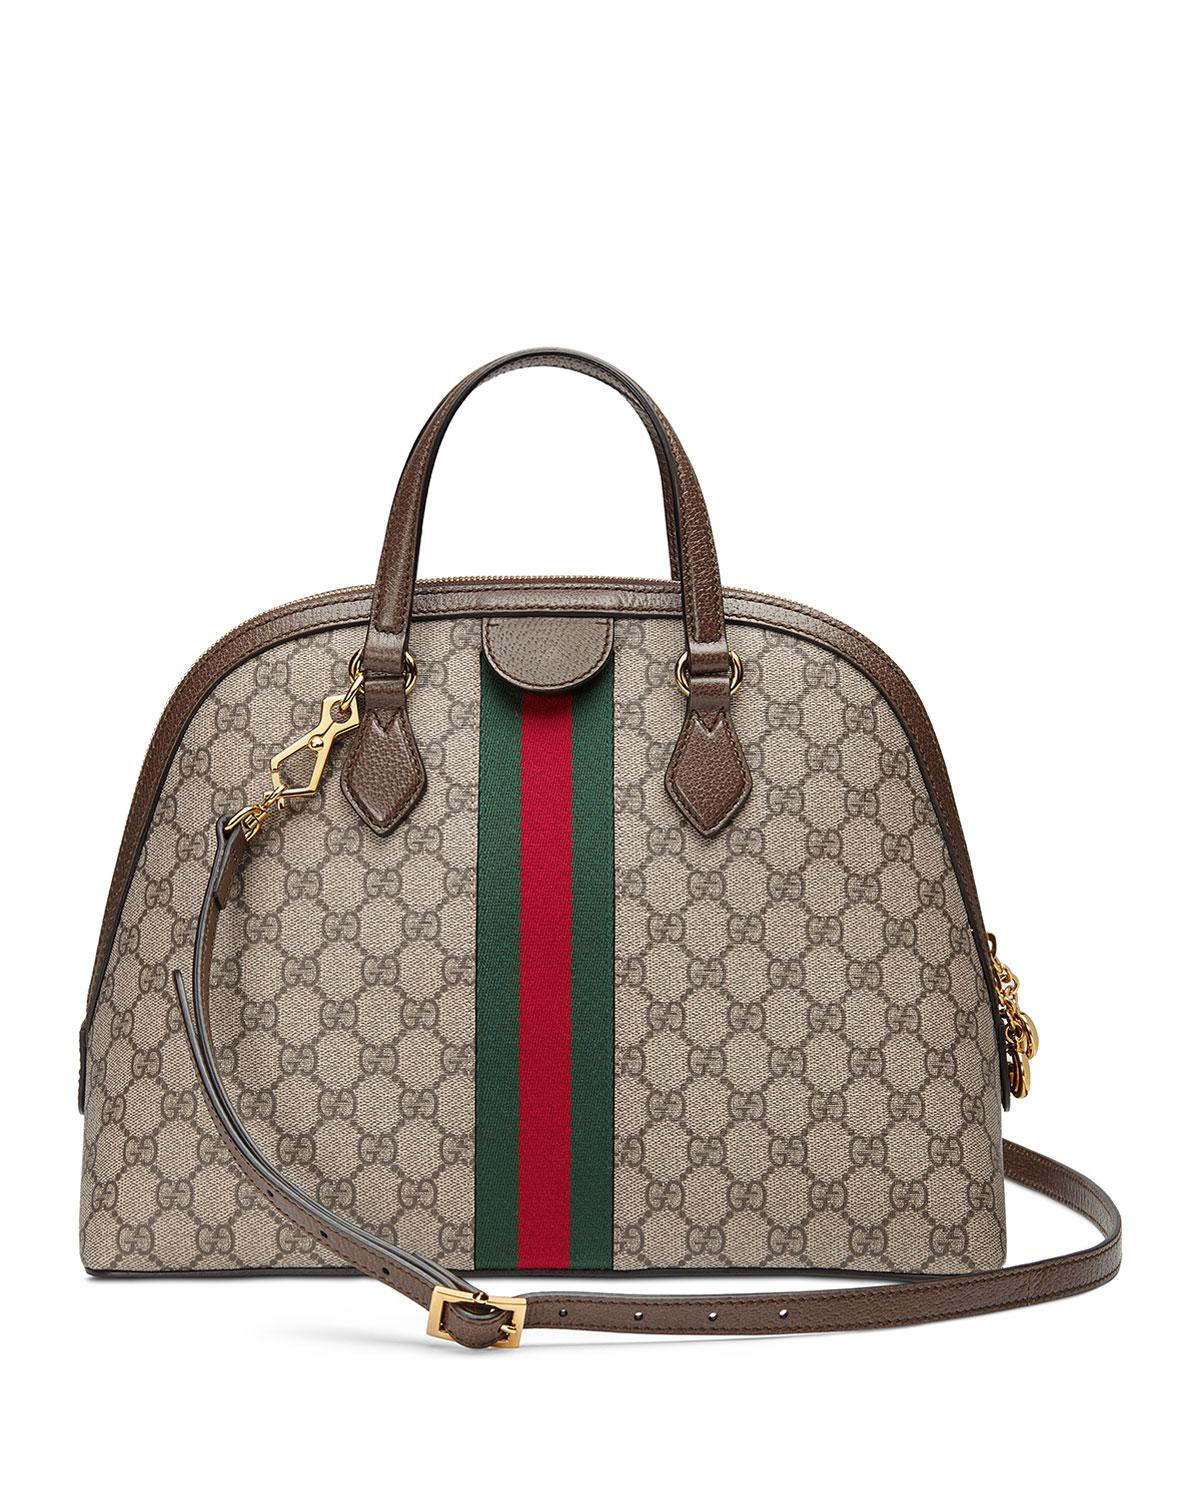 37ee53f906c Lyst - Gucci Ophidia GG Medium Top Handle Bag in Natural - Save 5%